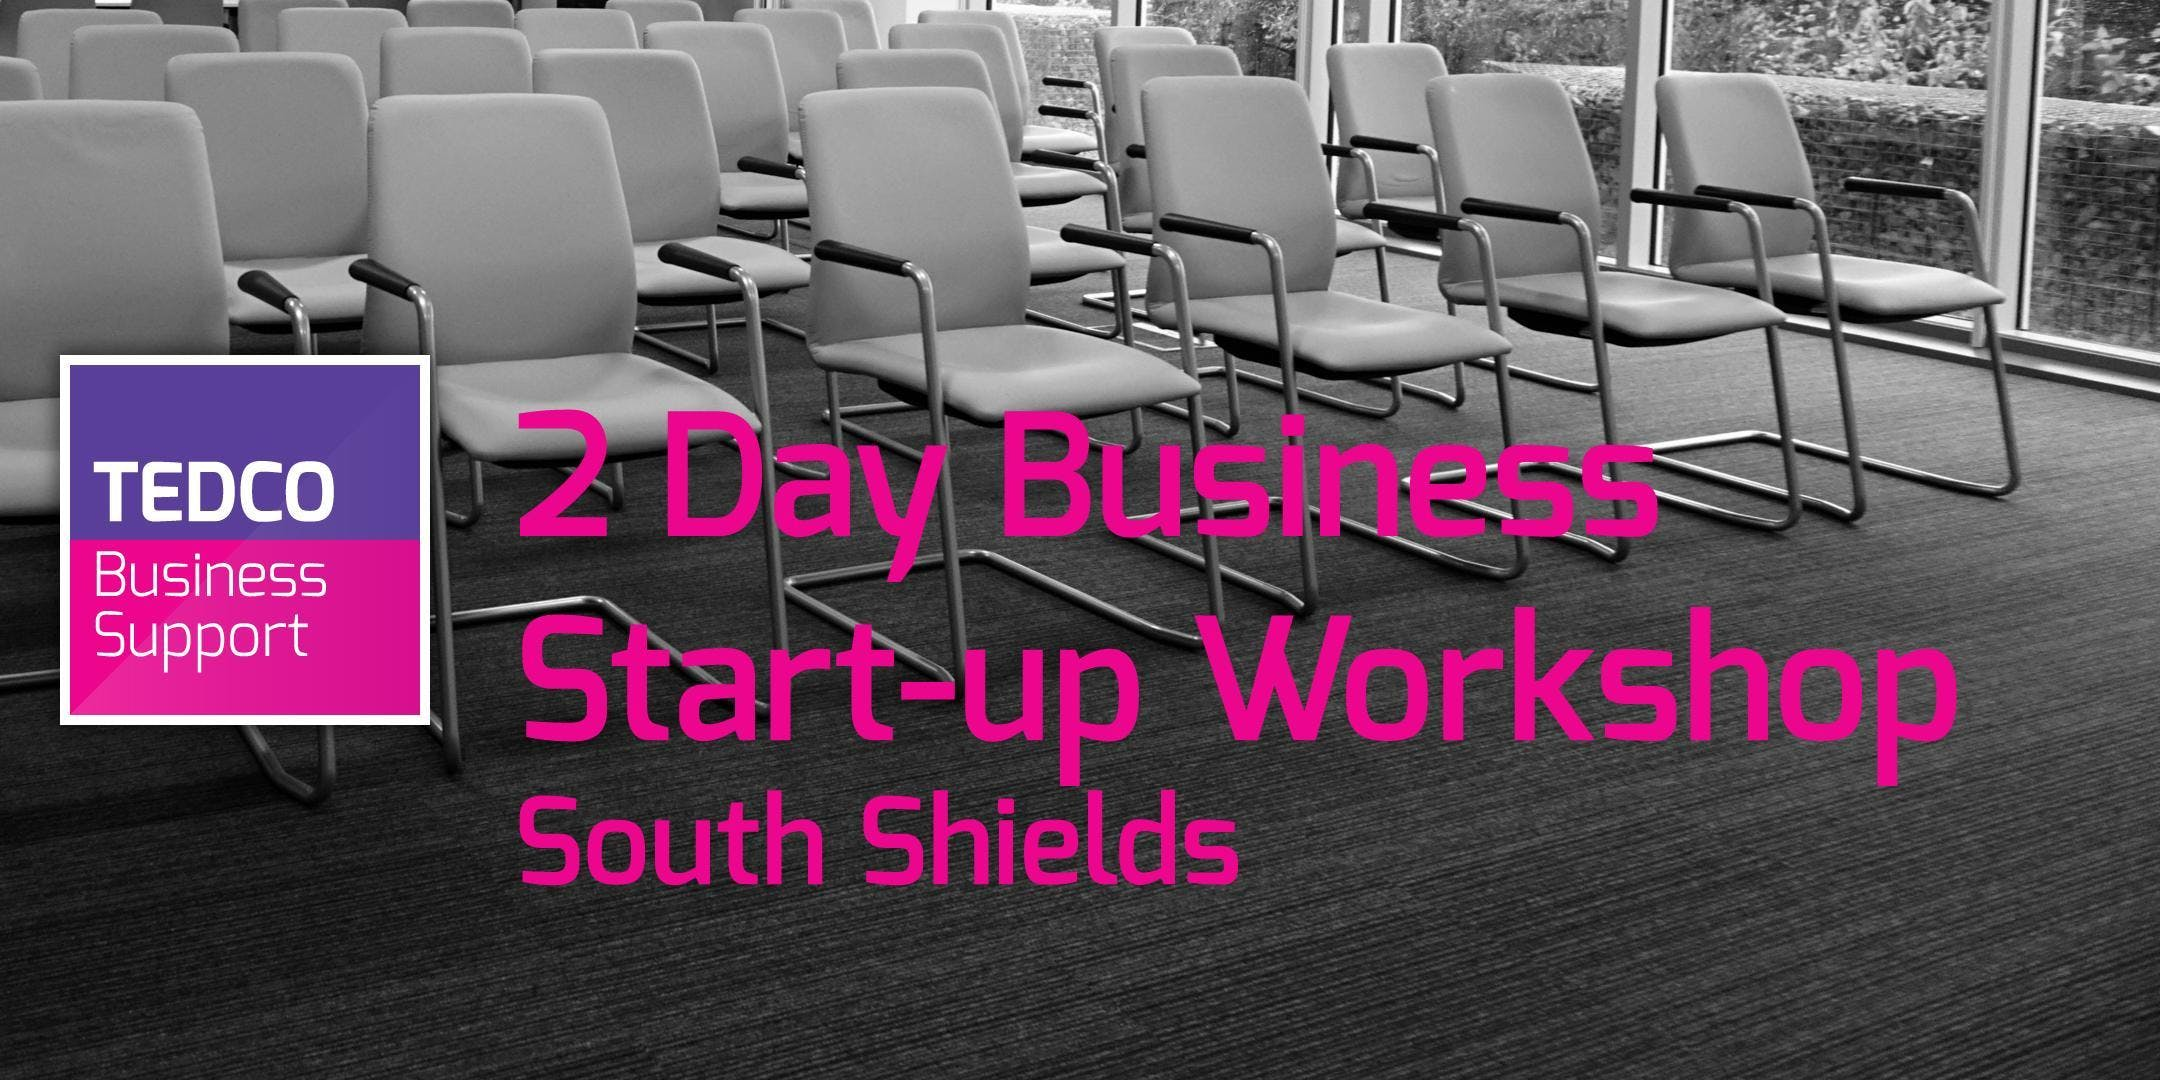 Business Start-up Workshop South Shields (2 Days) February